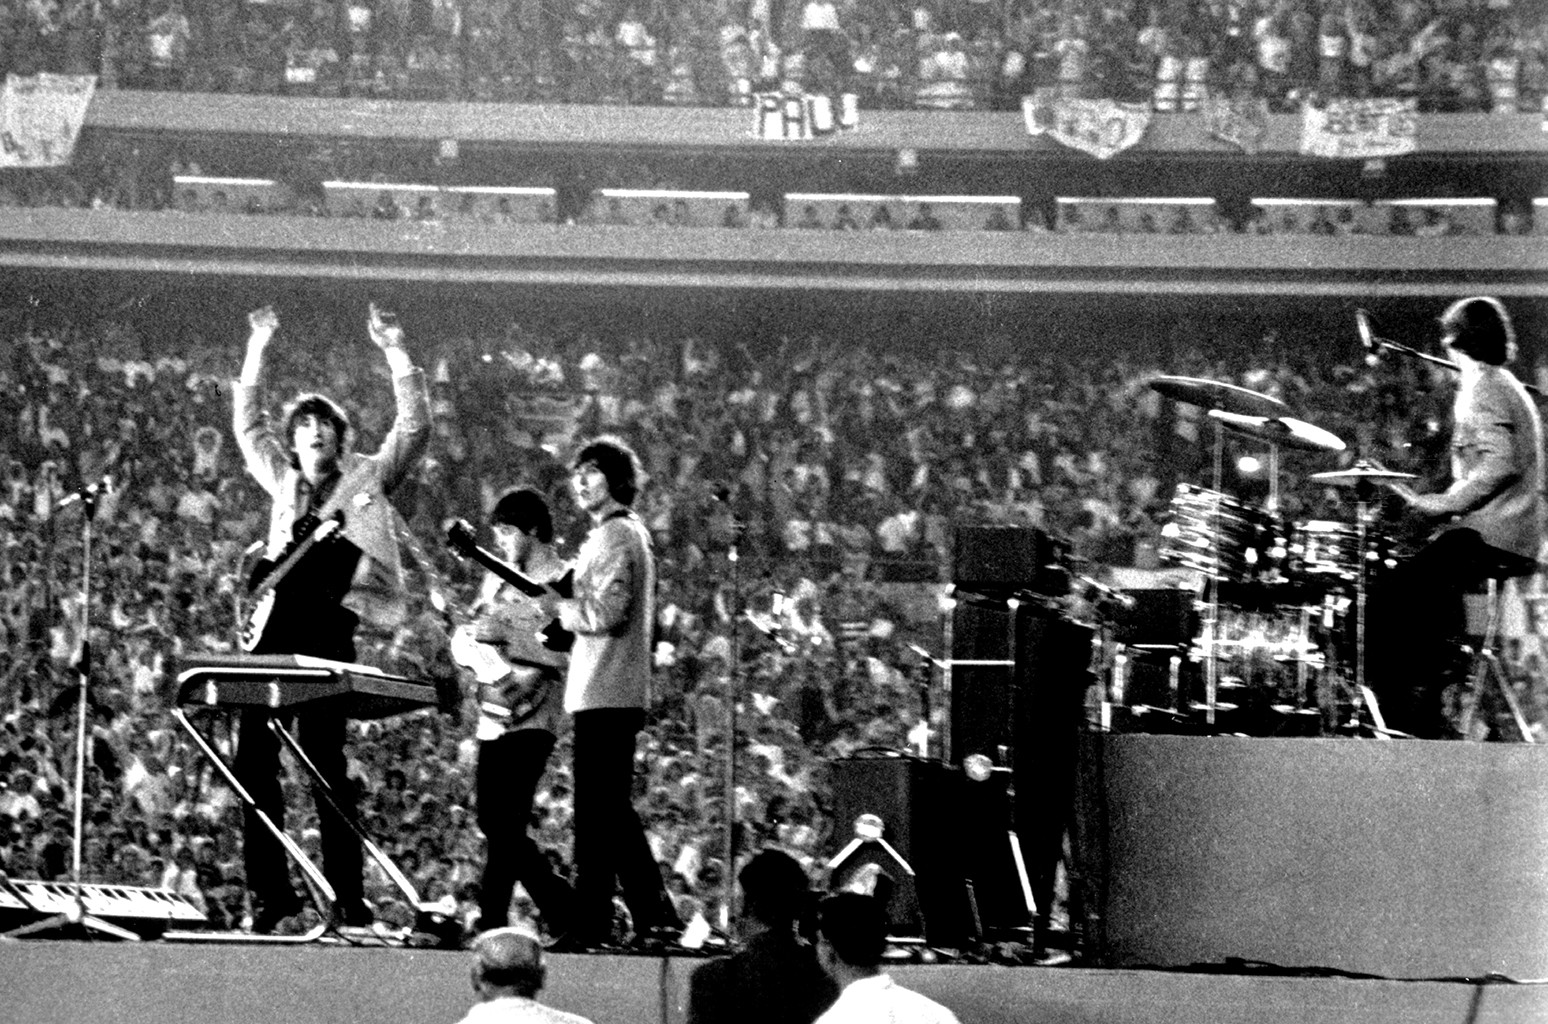 The Beatles perform at Shea Stadium